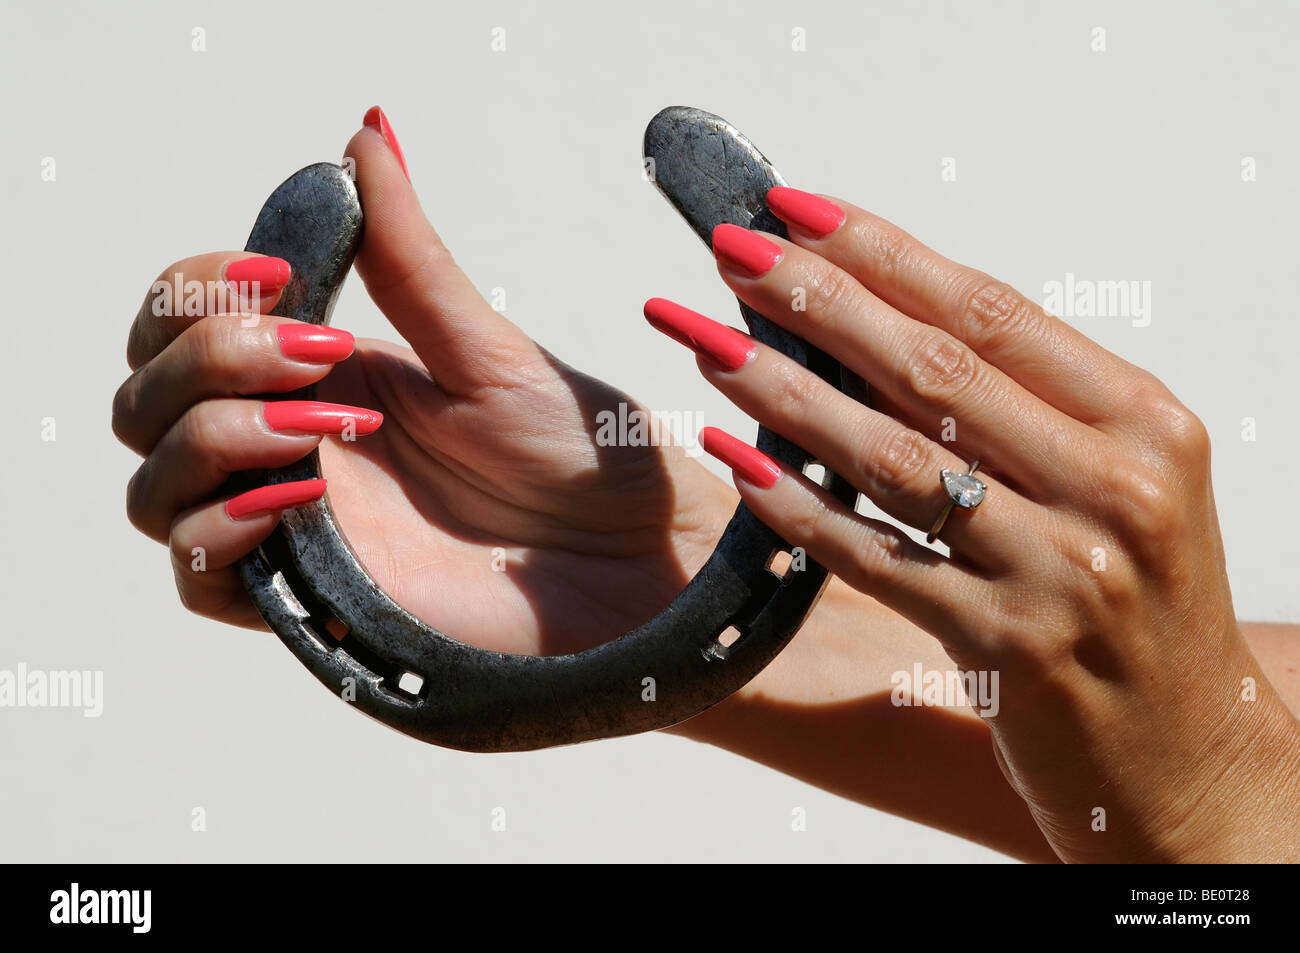 Long Red Nails Stock Photos & Long Red Nails Stock Images - Alamy